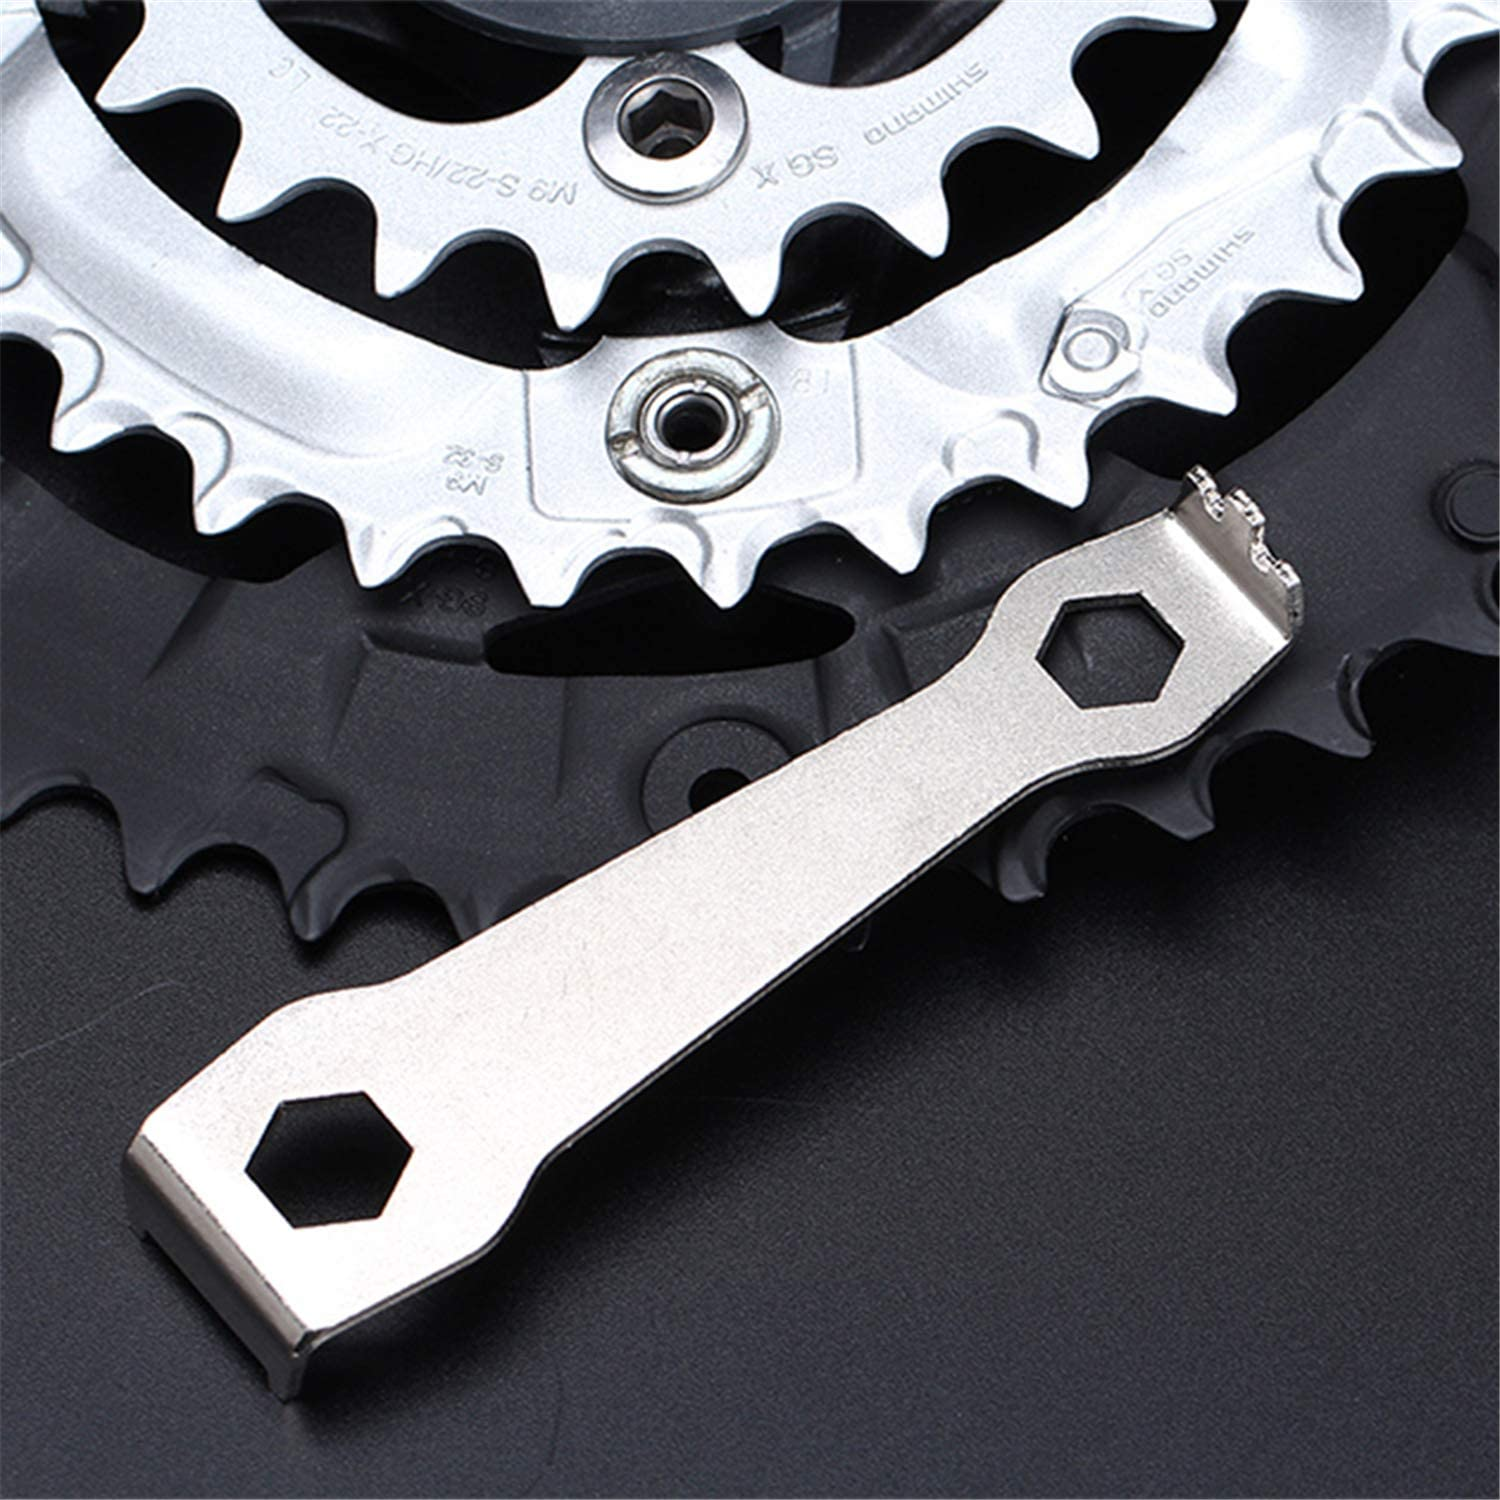 Bicycle Chain Ring Bolts Wrench Chainwheel Dismounting Tool Crankset Chainring Nut Wrench Spanner